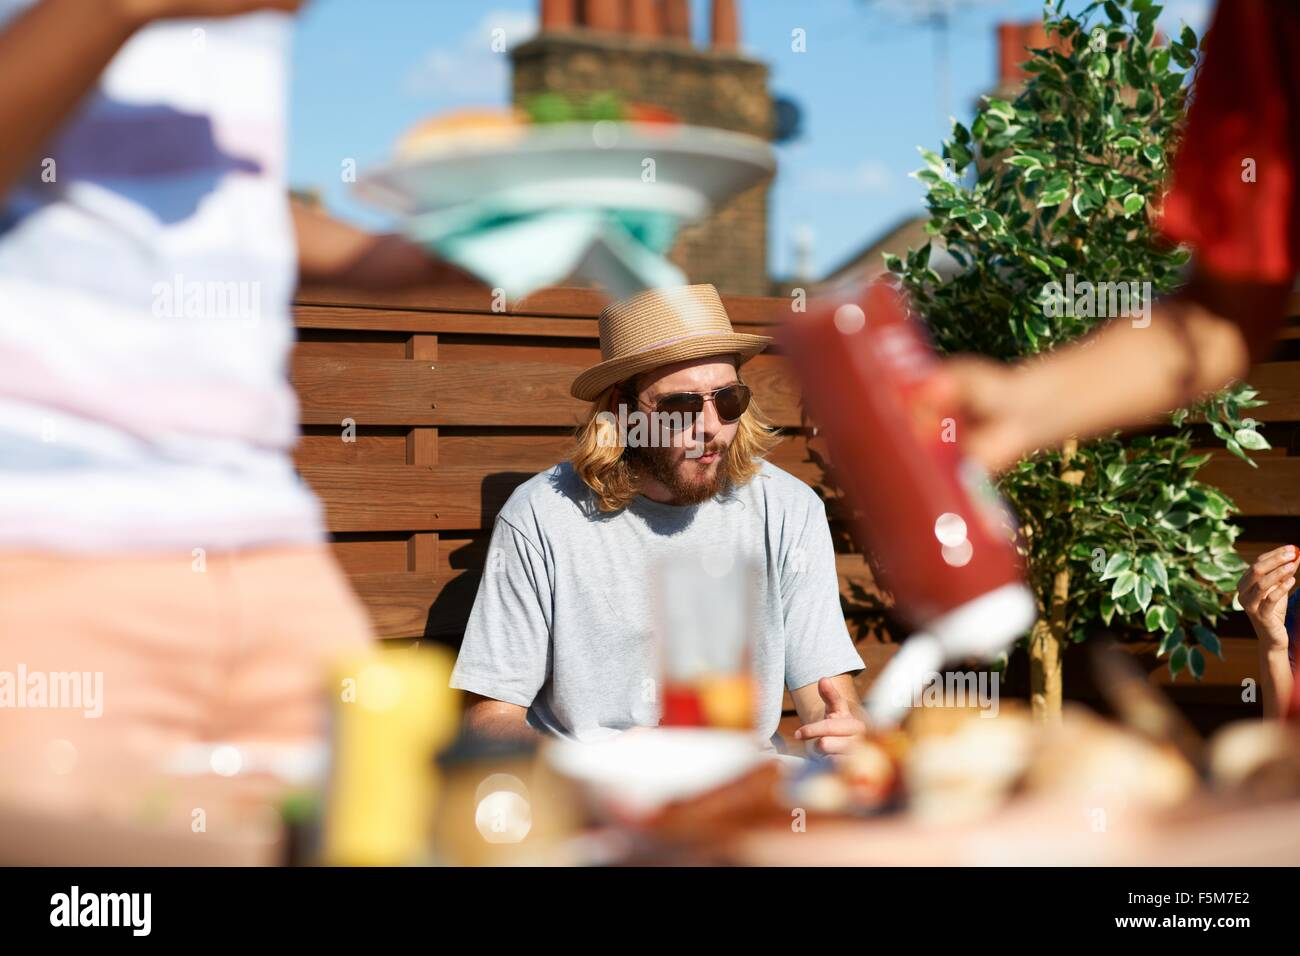 People at a rooftop party - Stock Image